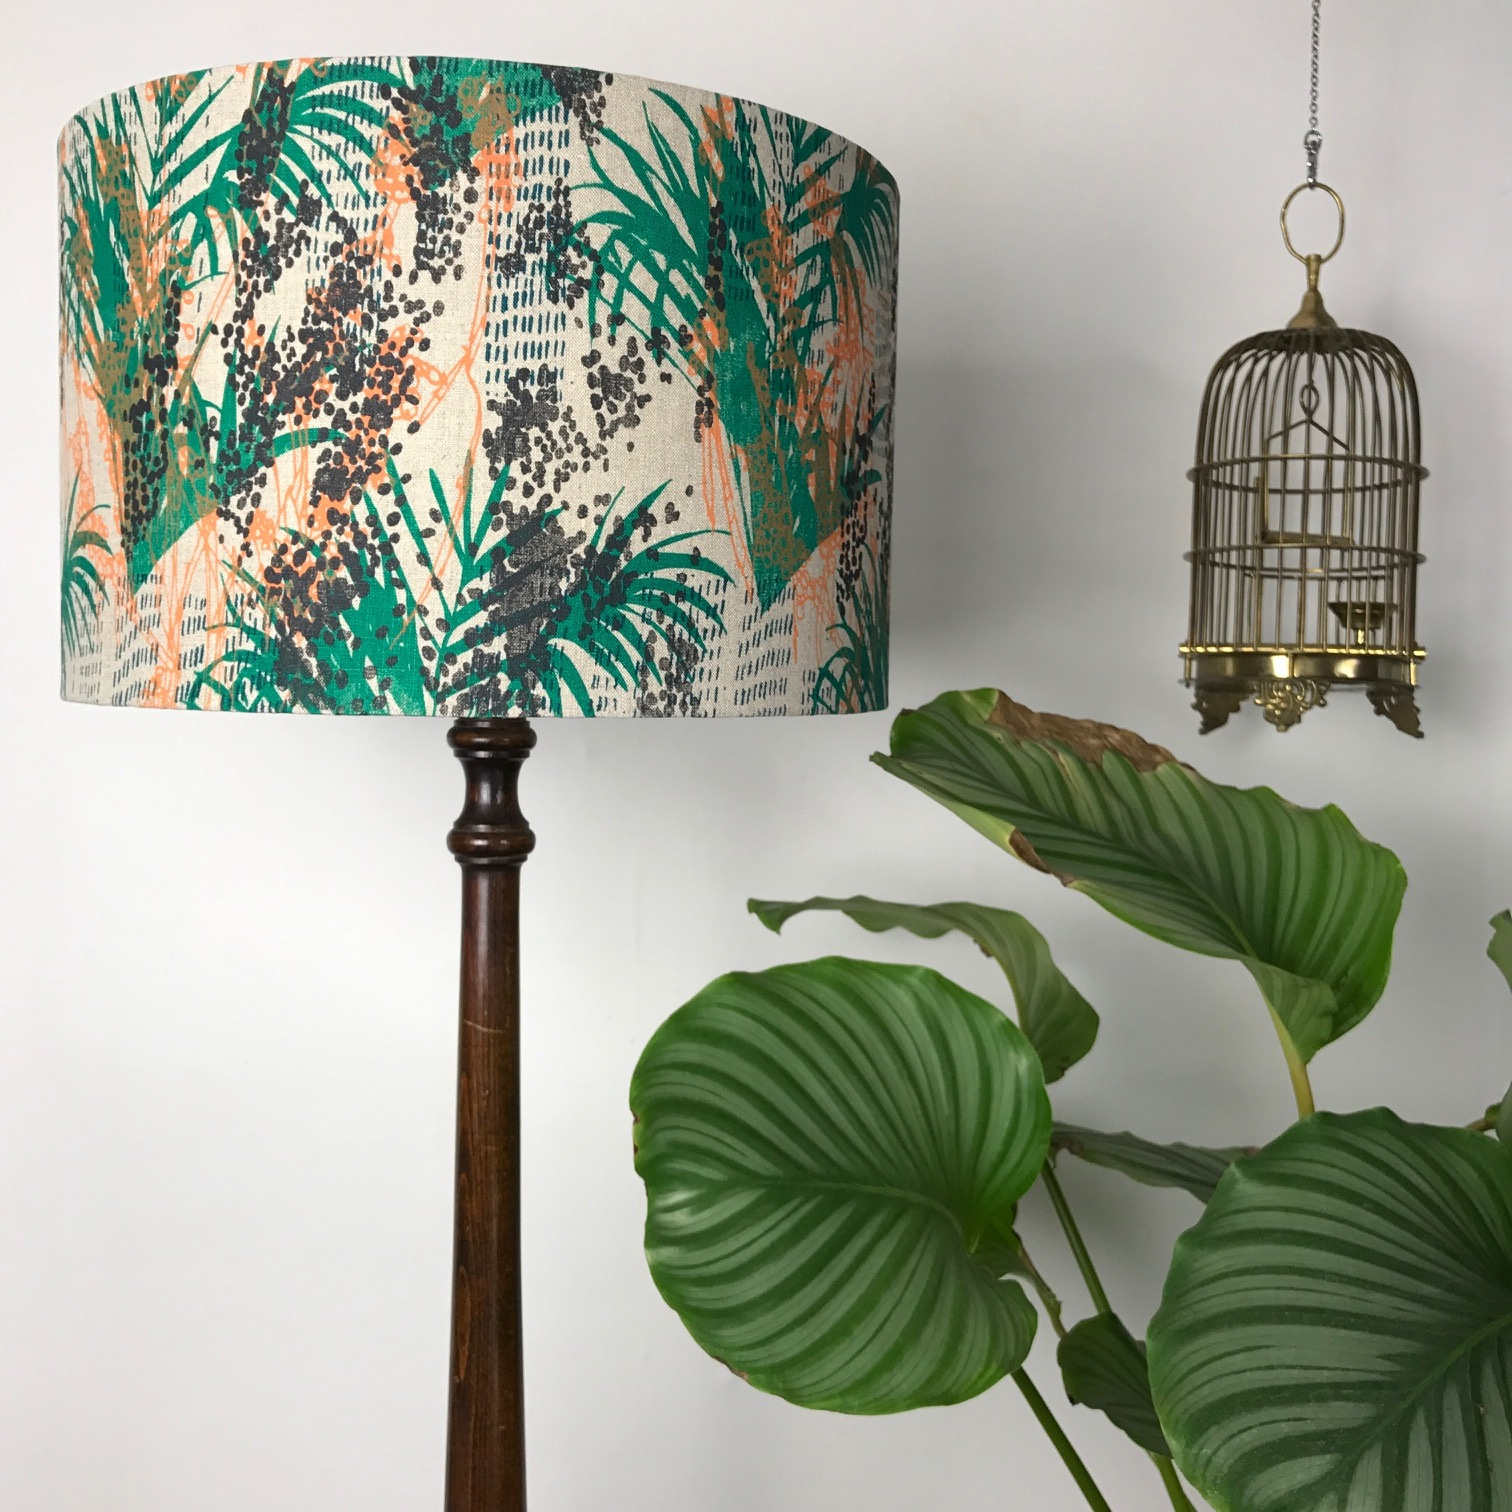 Hand screen printed lampshade by Ali Appleby